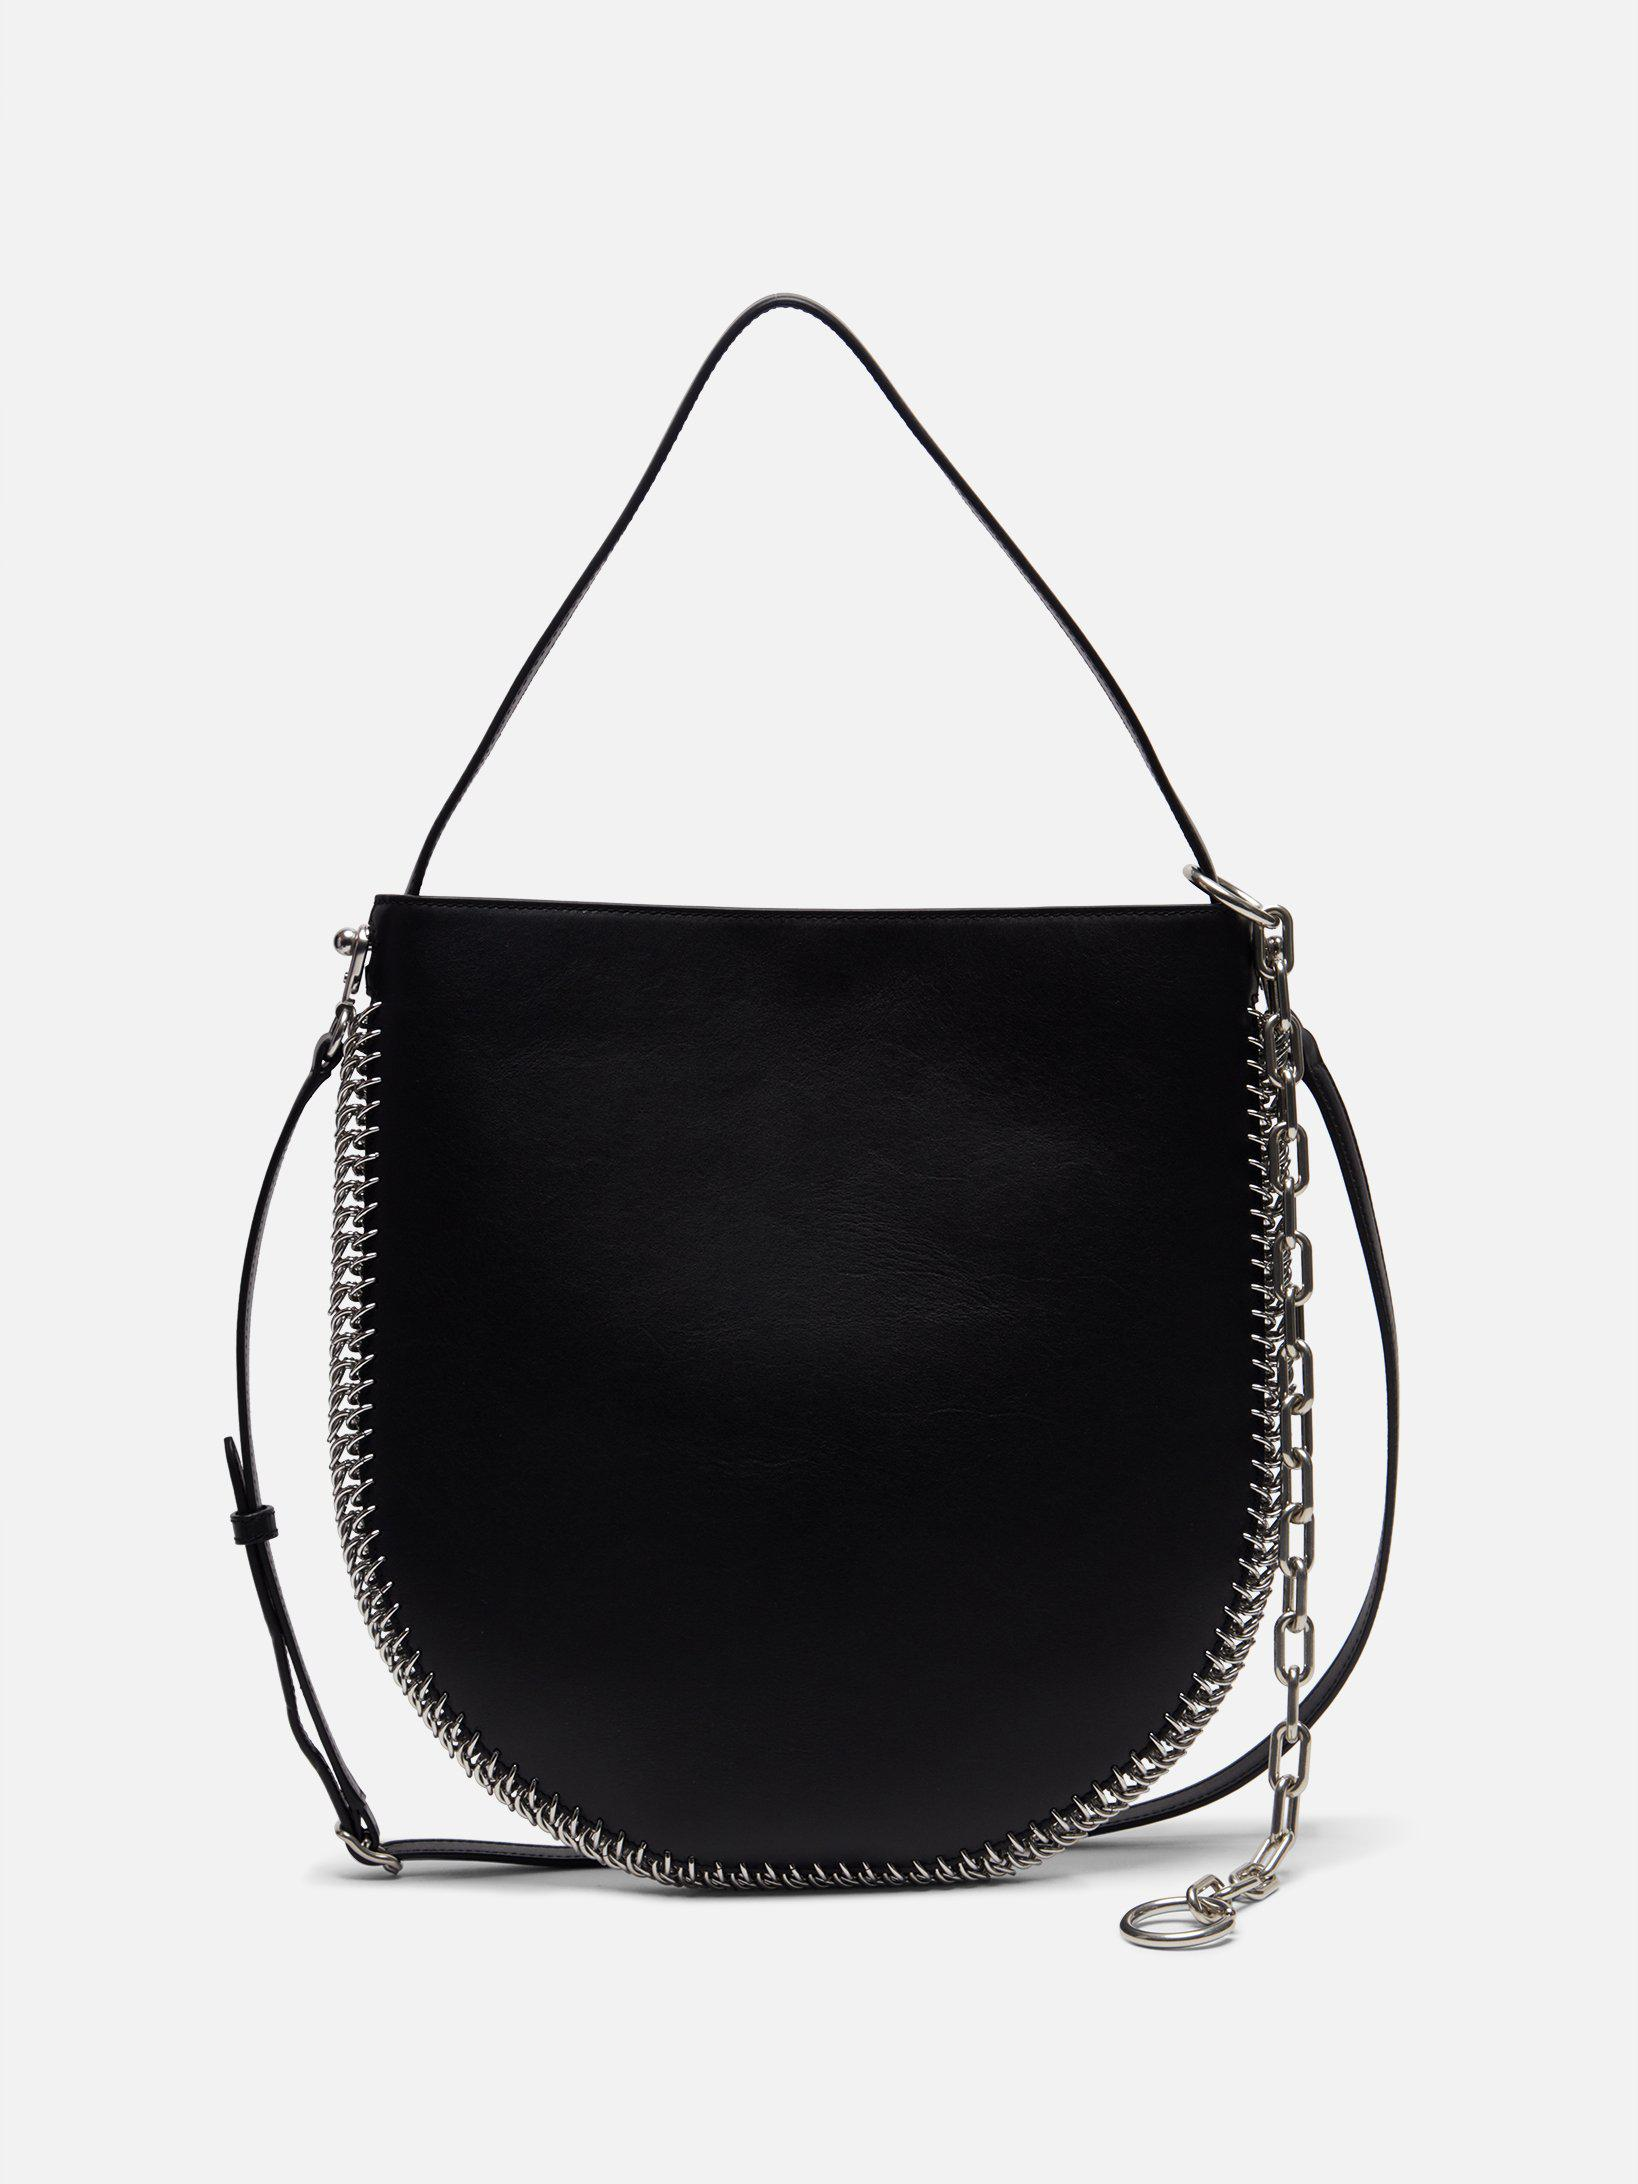 Real For Cheap Roxy Hobo Bag in Cashmere Goatskin Leather Alexander Wang Sast Cheap Online vYss23uPX